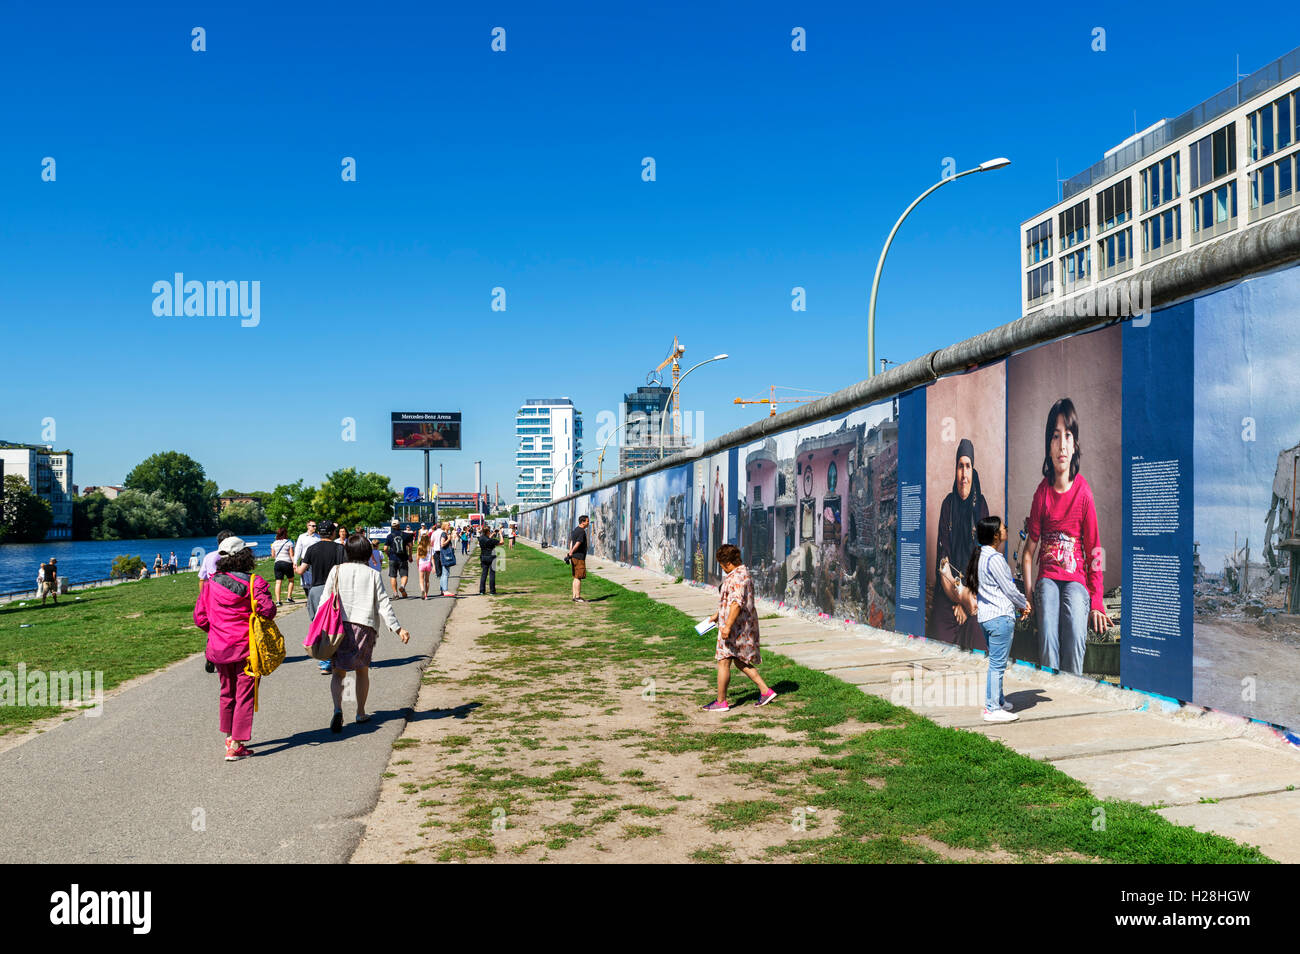 Section of the Berlin Wall at the East Side Gallery, Friedrichshain-Kreuzberg, Berlin, Germany - Stock Image